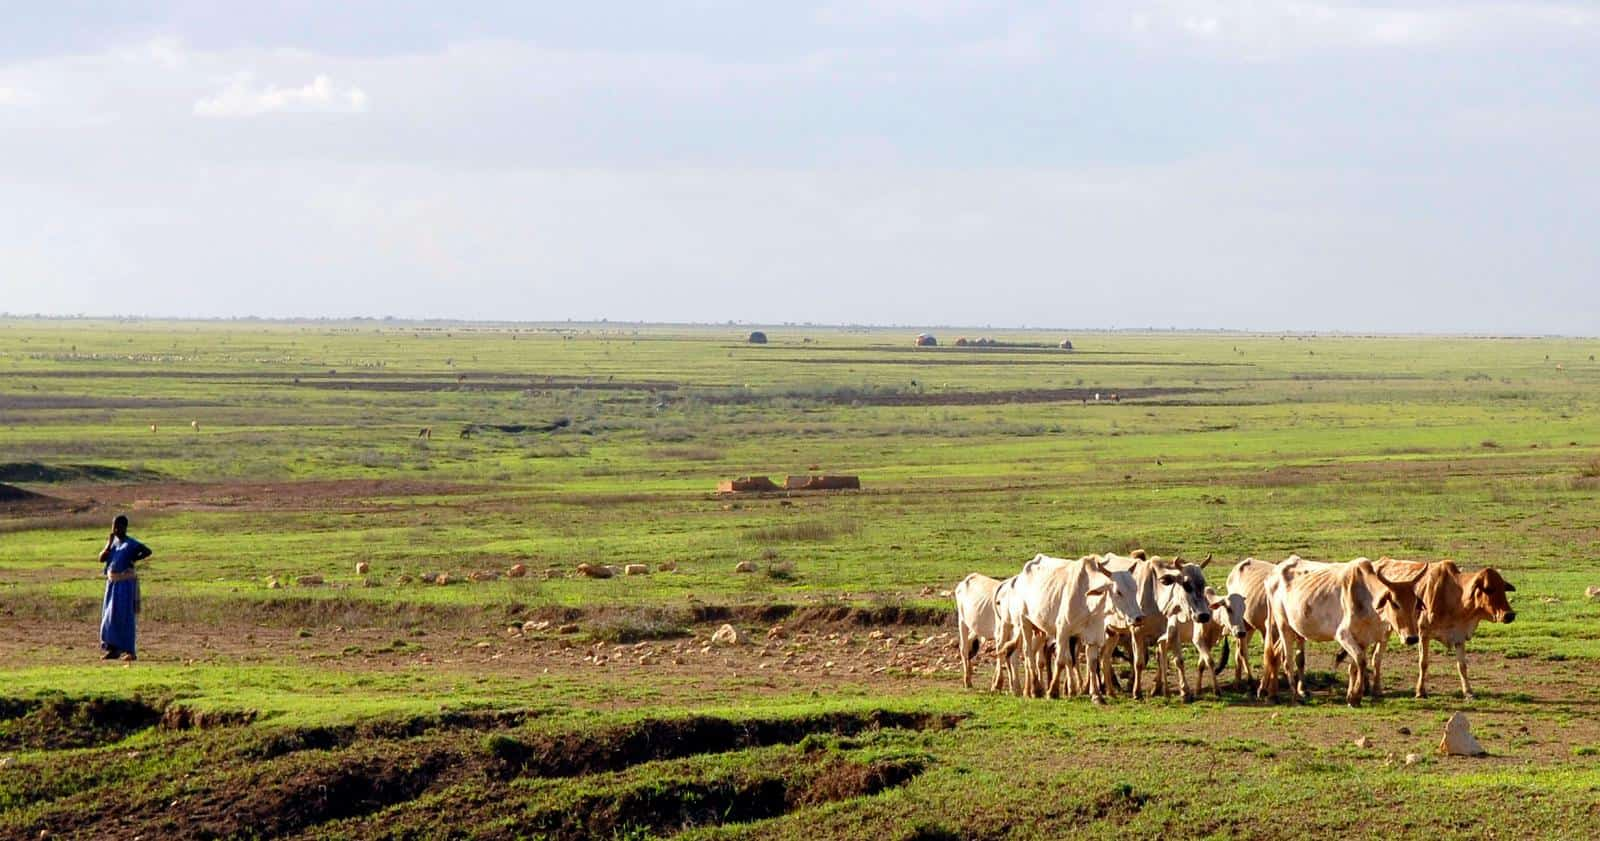 US businessmen are close to exploiting Ethiopia's oil plans in a multibillion-dollar scheme